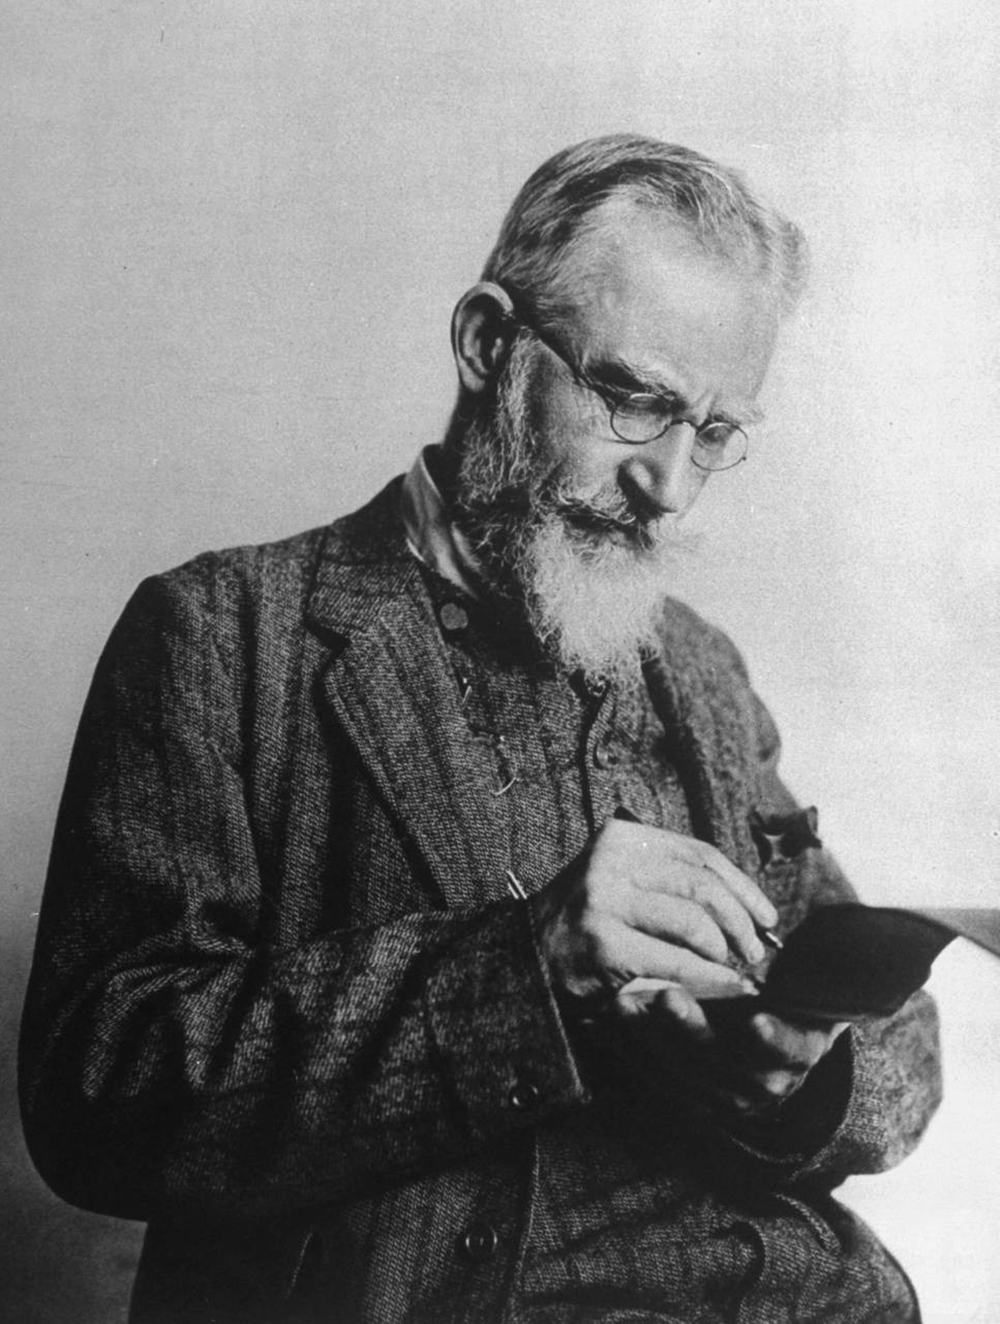 George Bernard Shaw, 1914. Life photo archive.